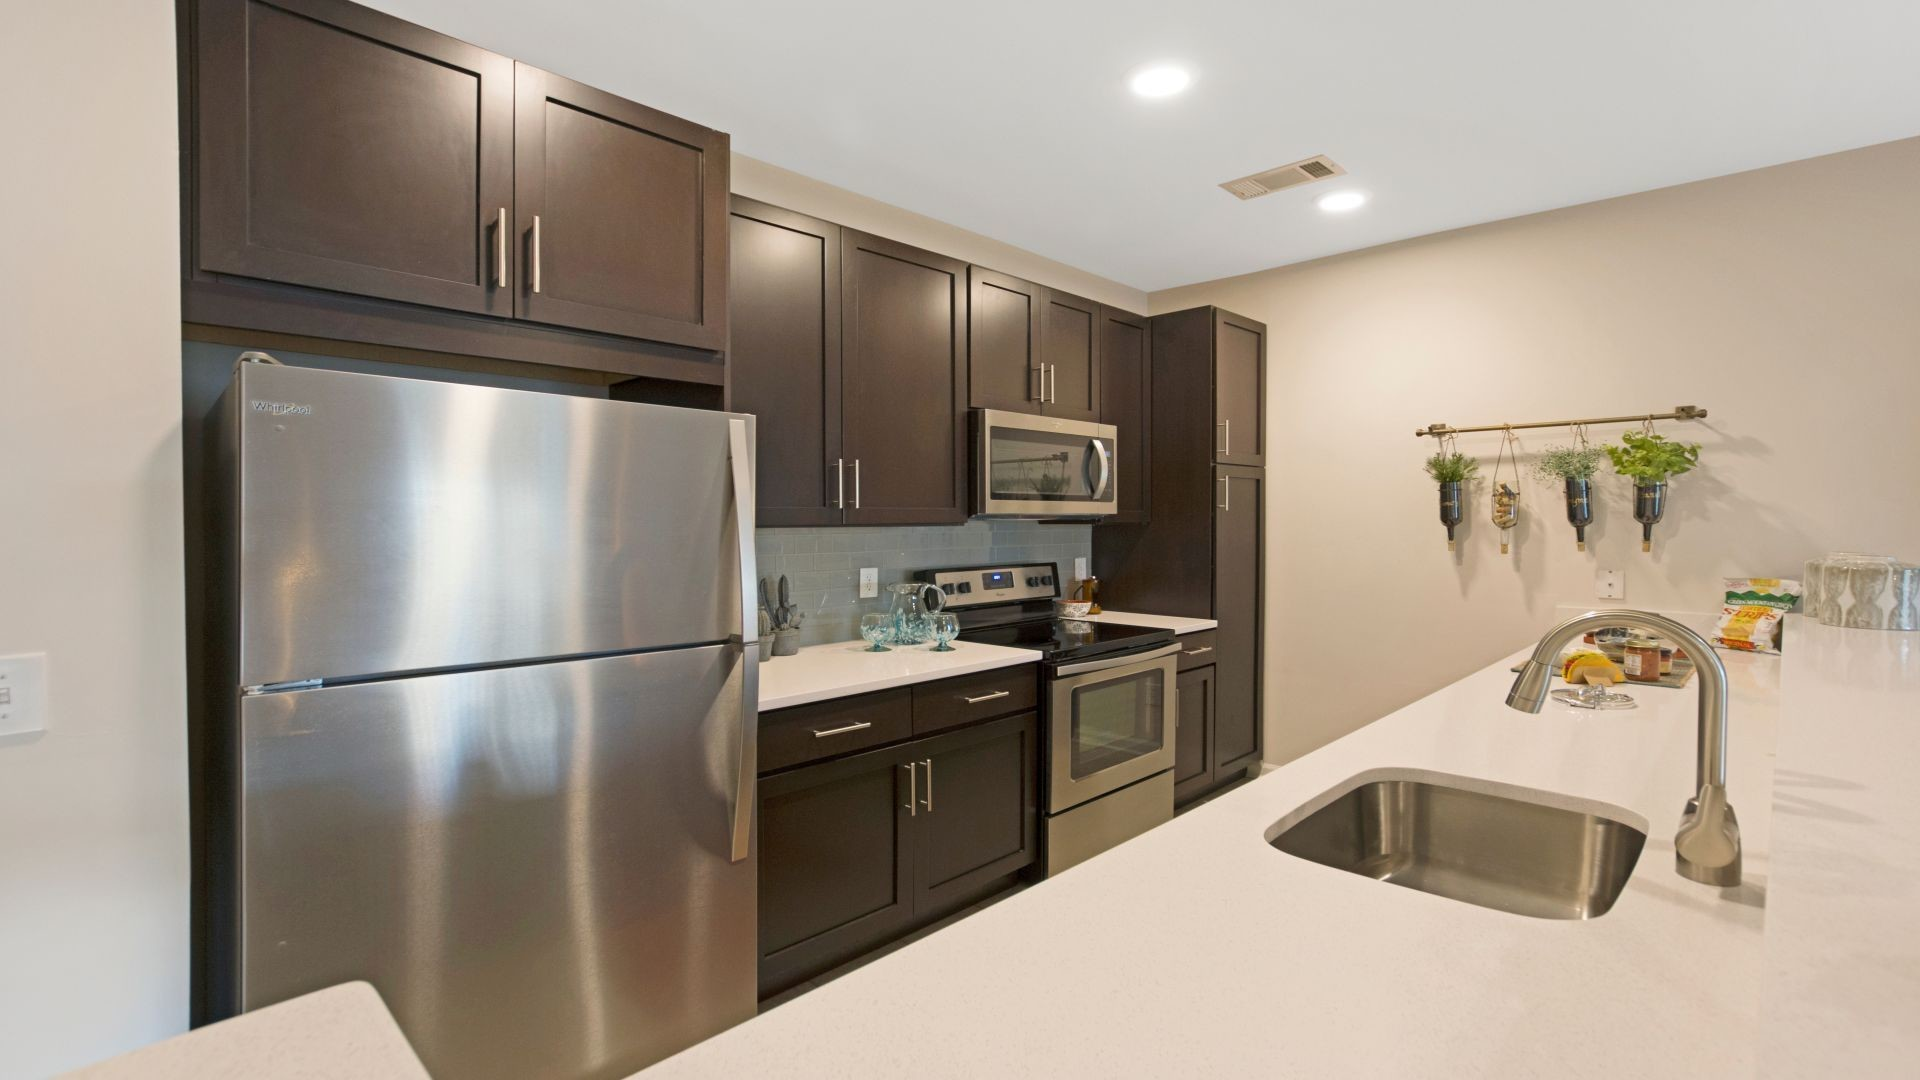 Interior kitchen image with stainless steel appliances dark wood cabinets and wood floors